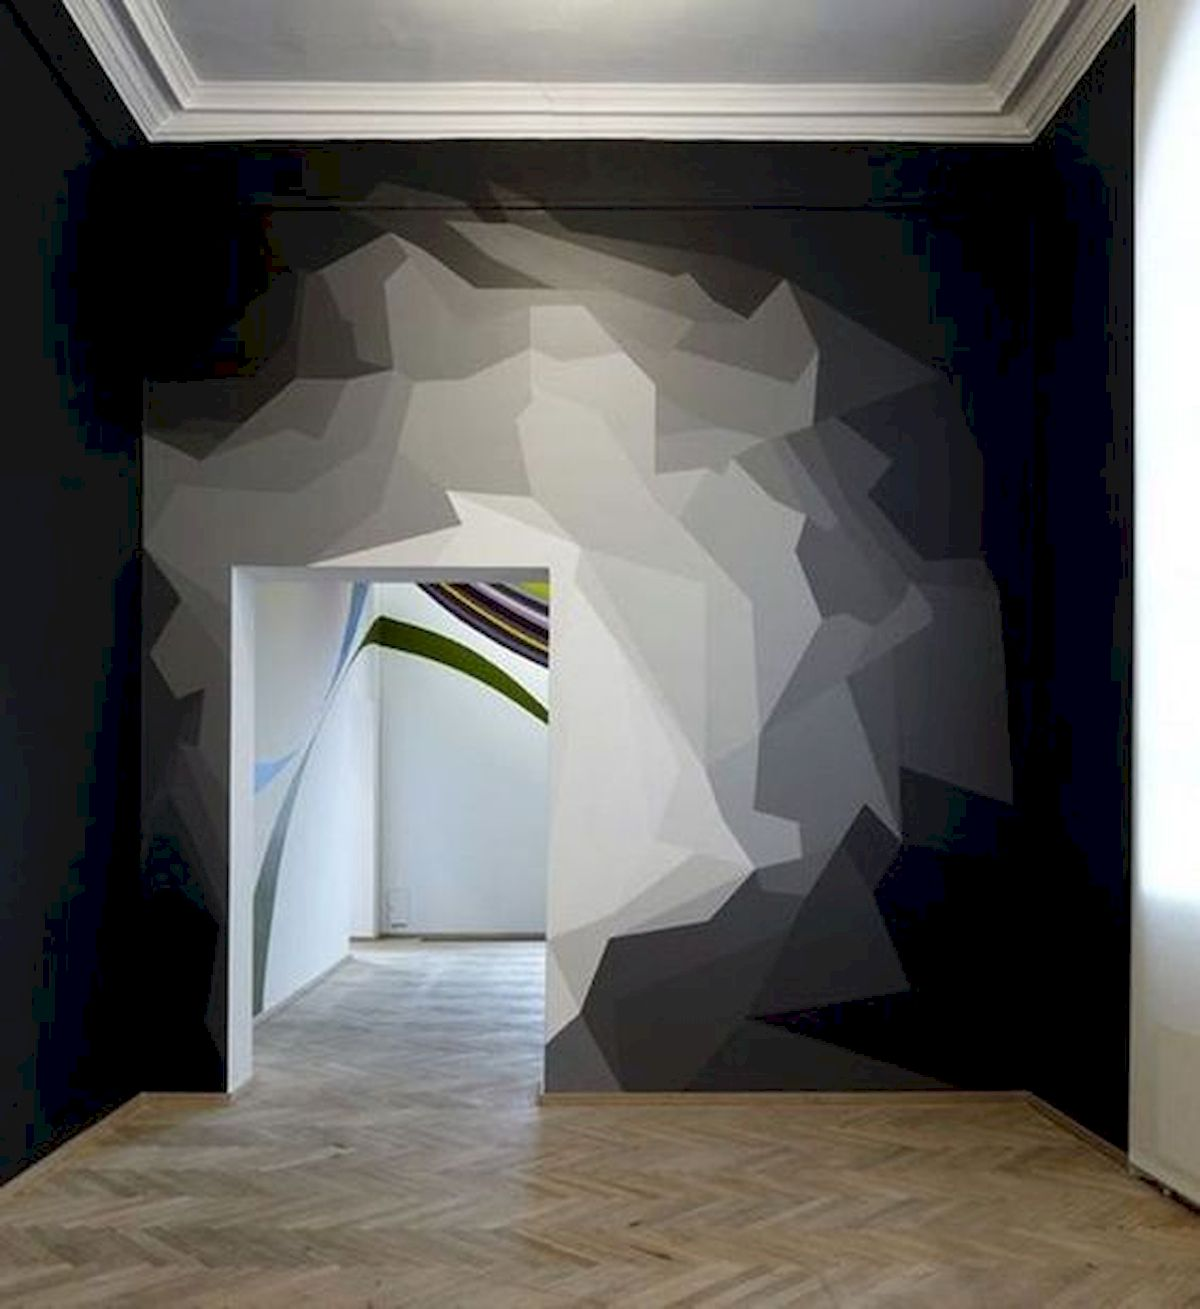 44 Easy but Awesome DIY Wall Painting Ideas to Decorate Your Home (15)